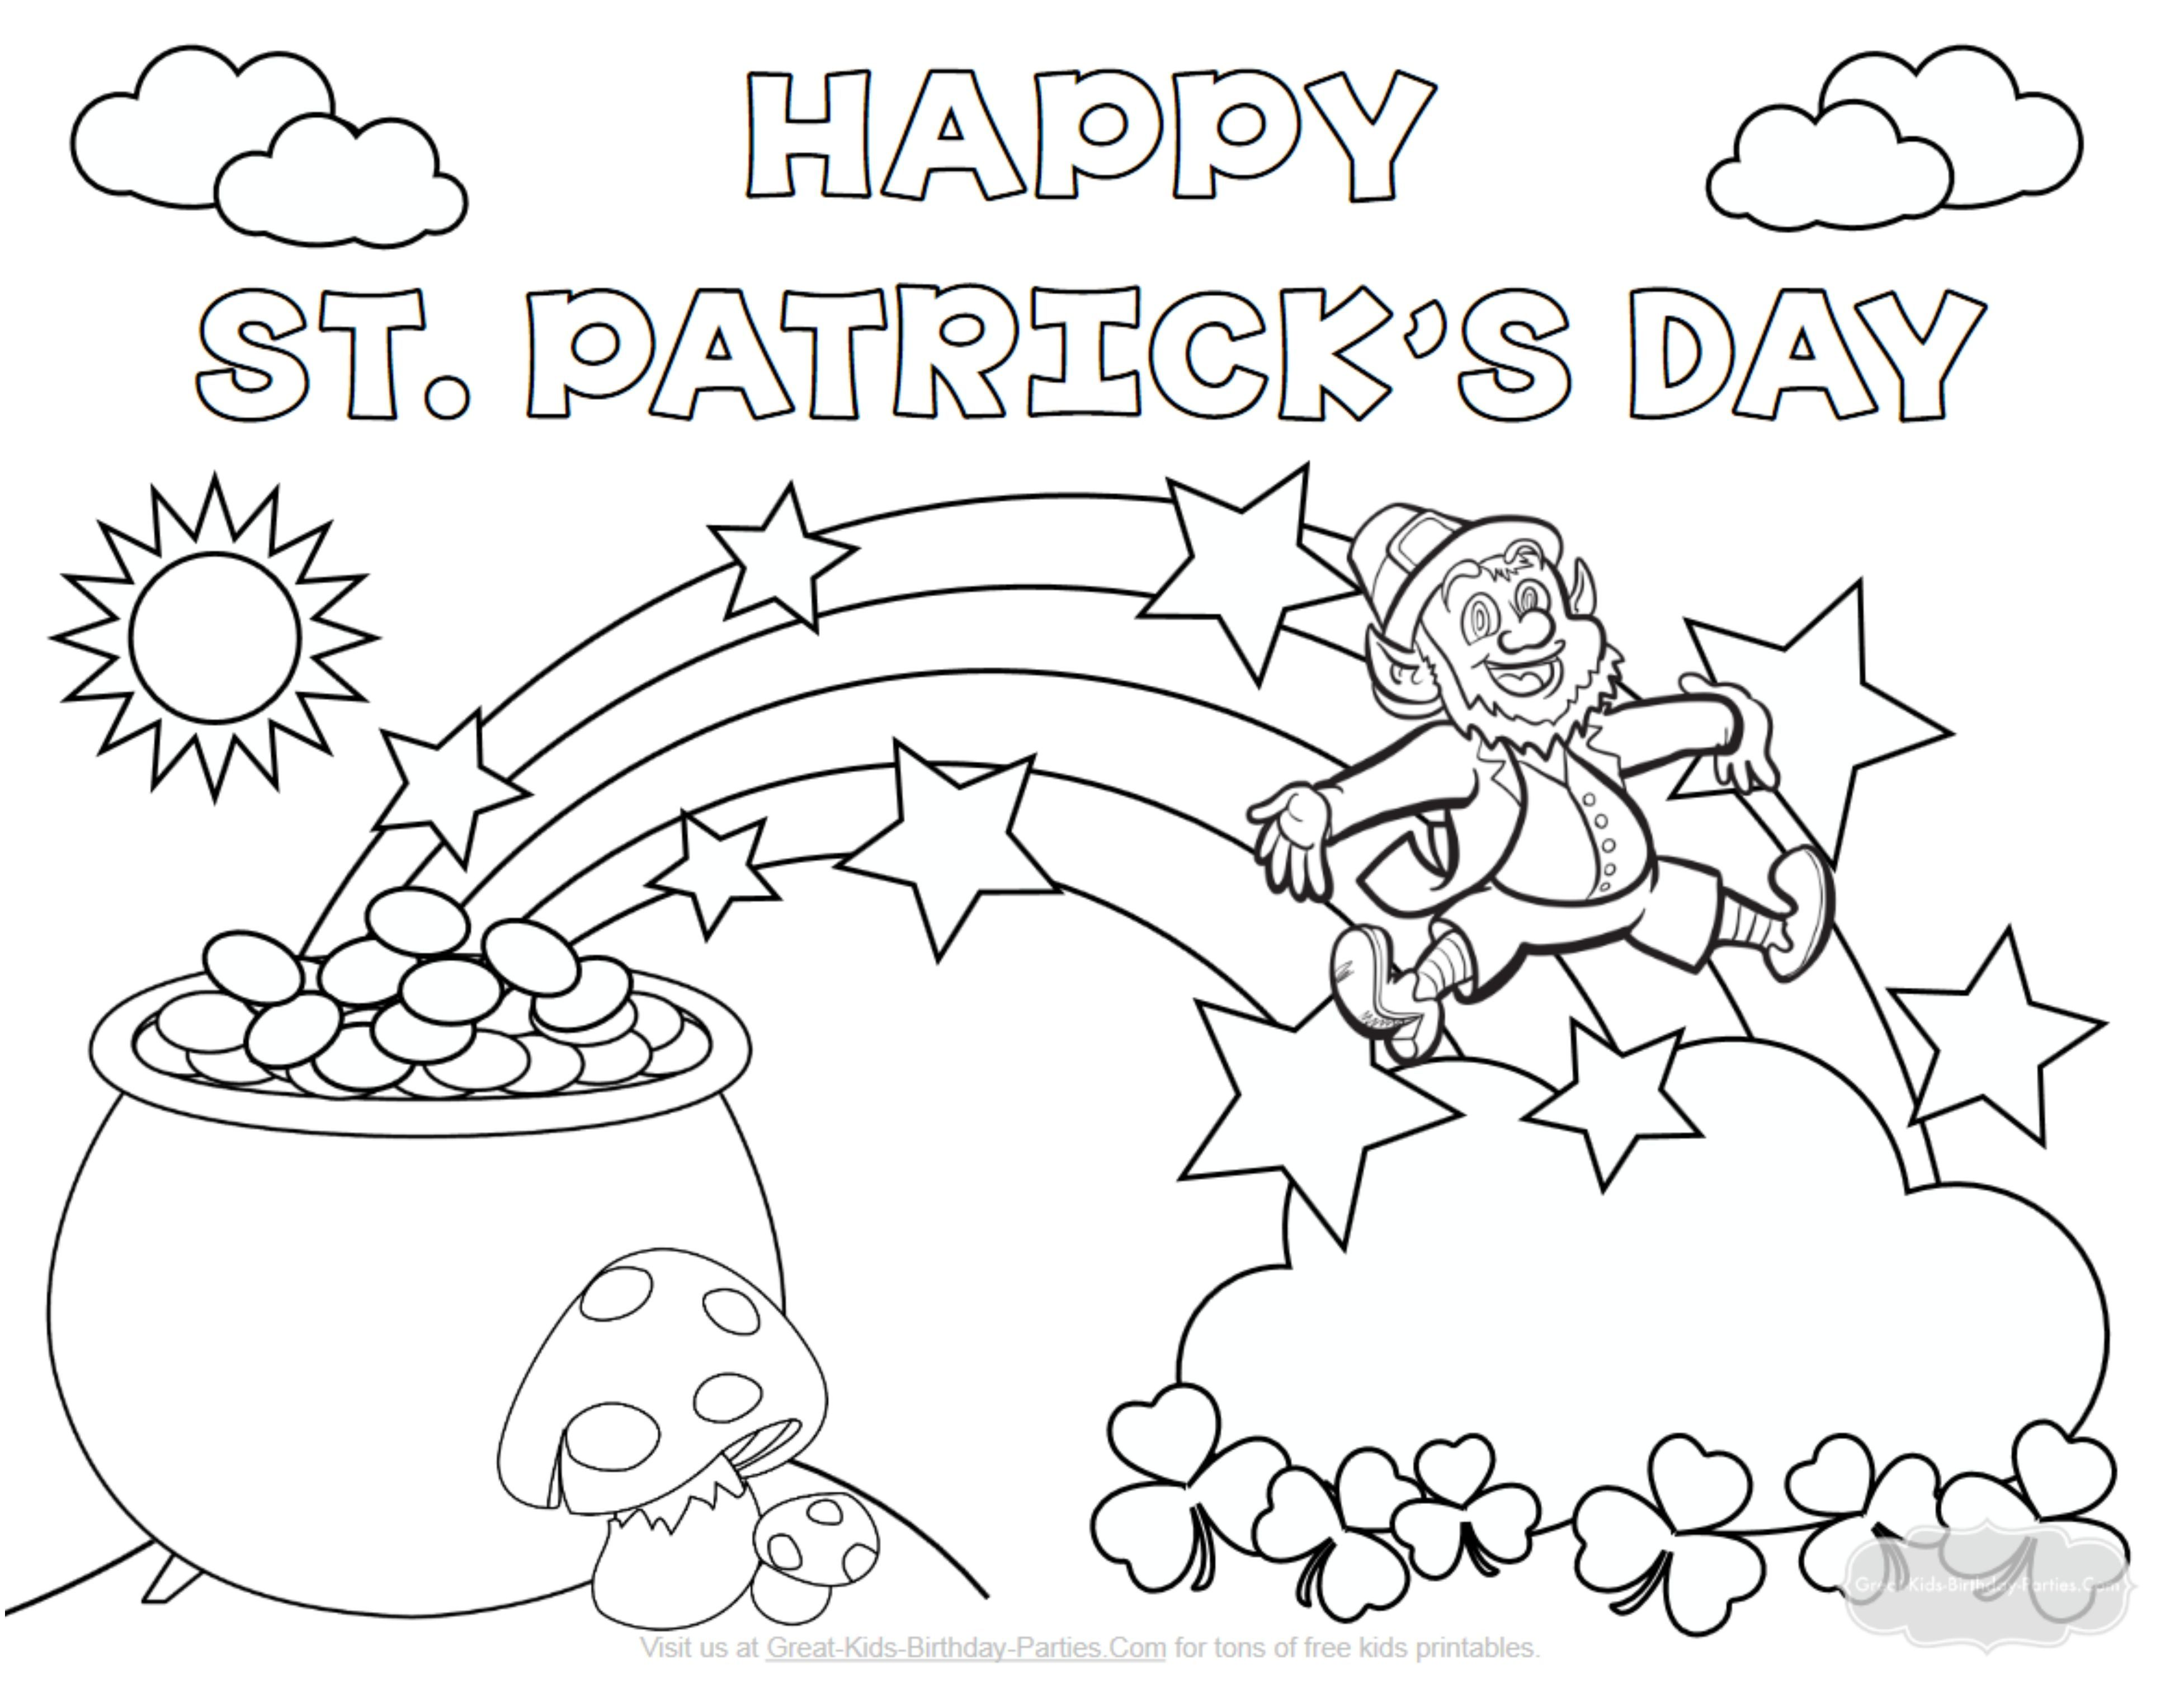 Here Is The St Patrick S Day Coloring Page Click The